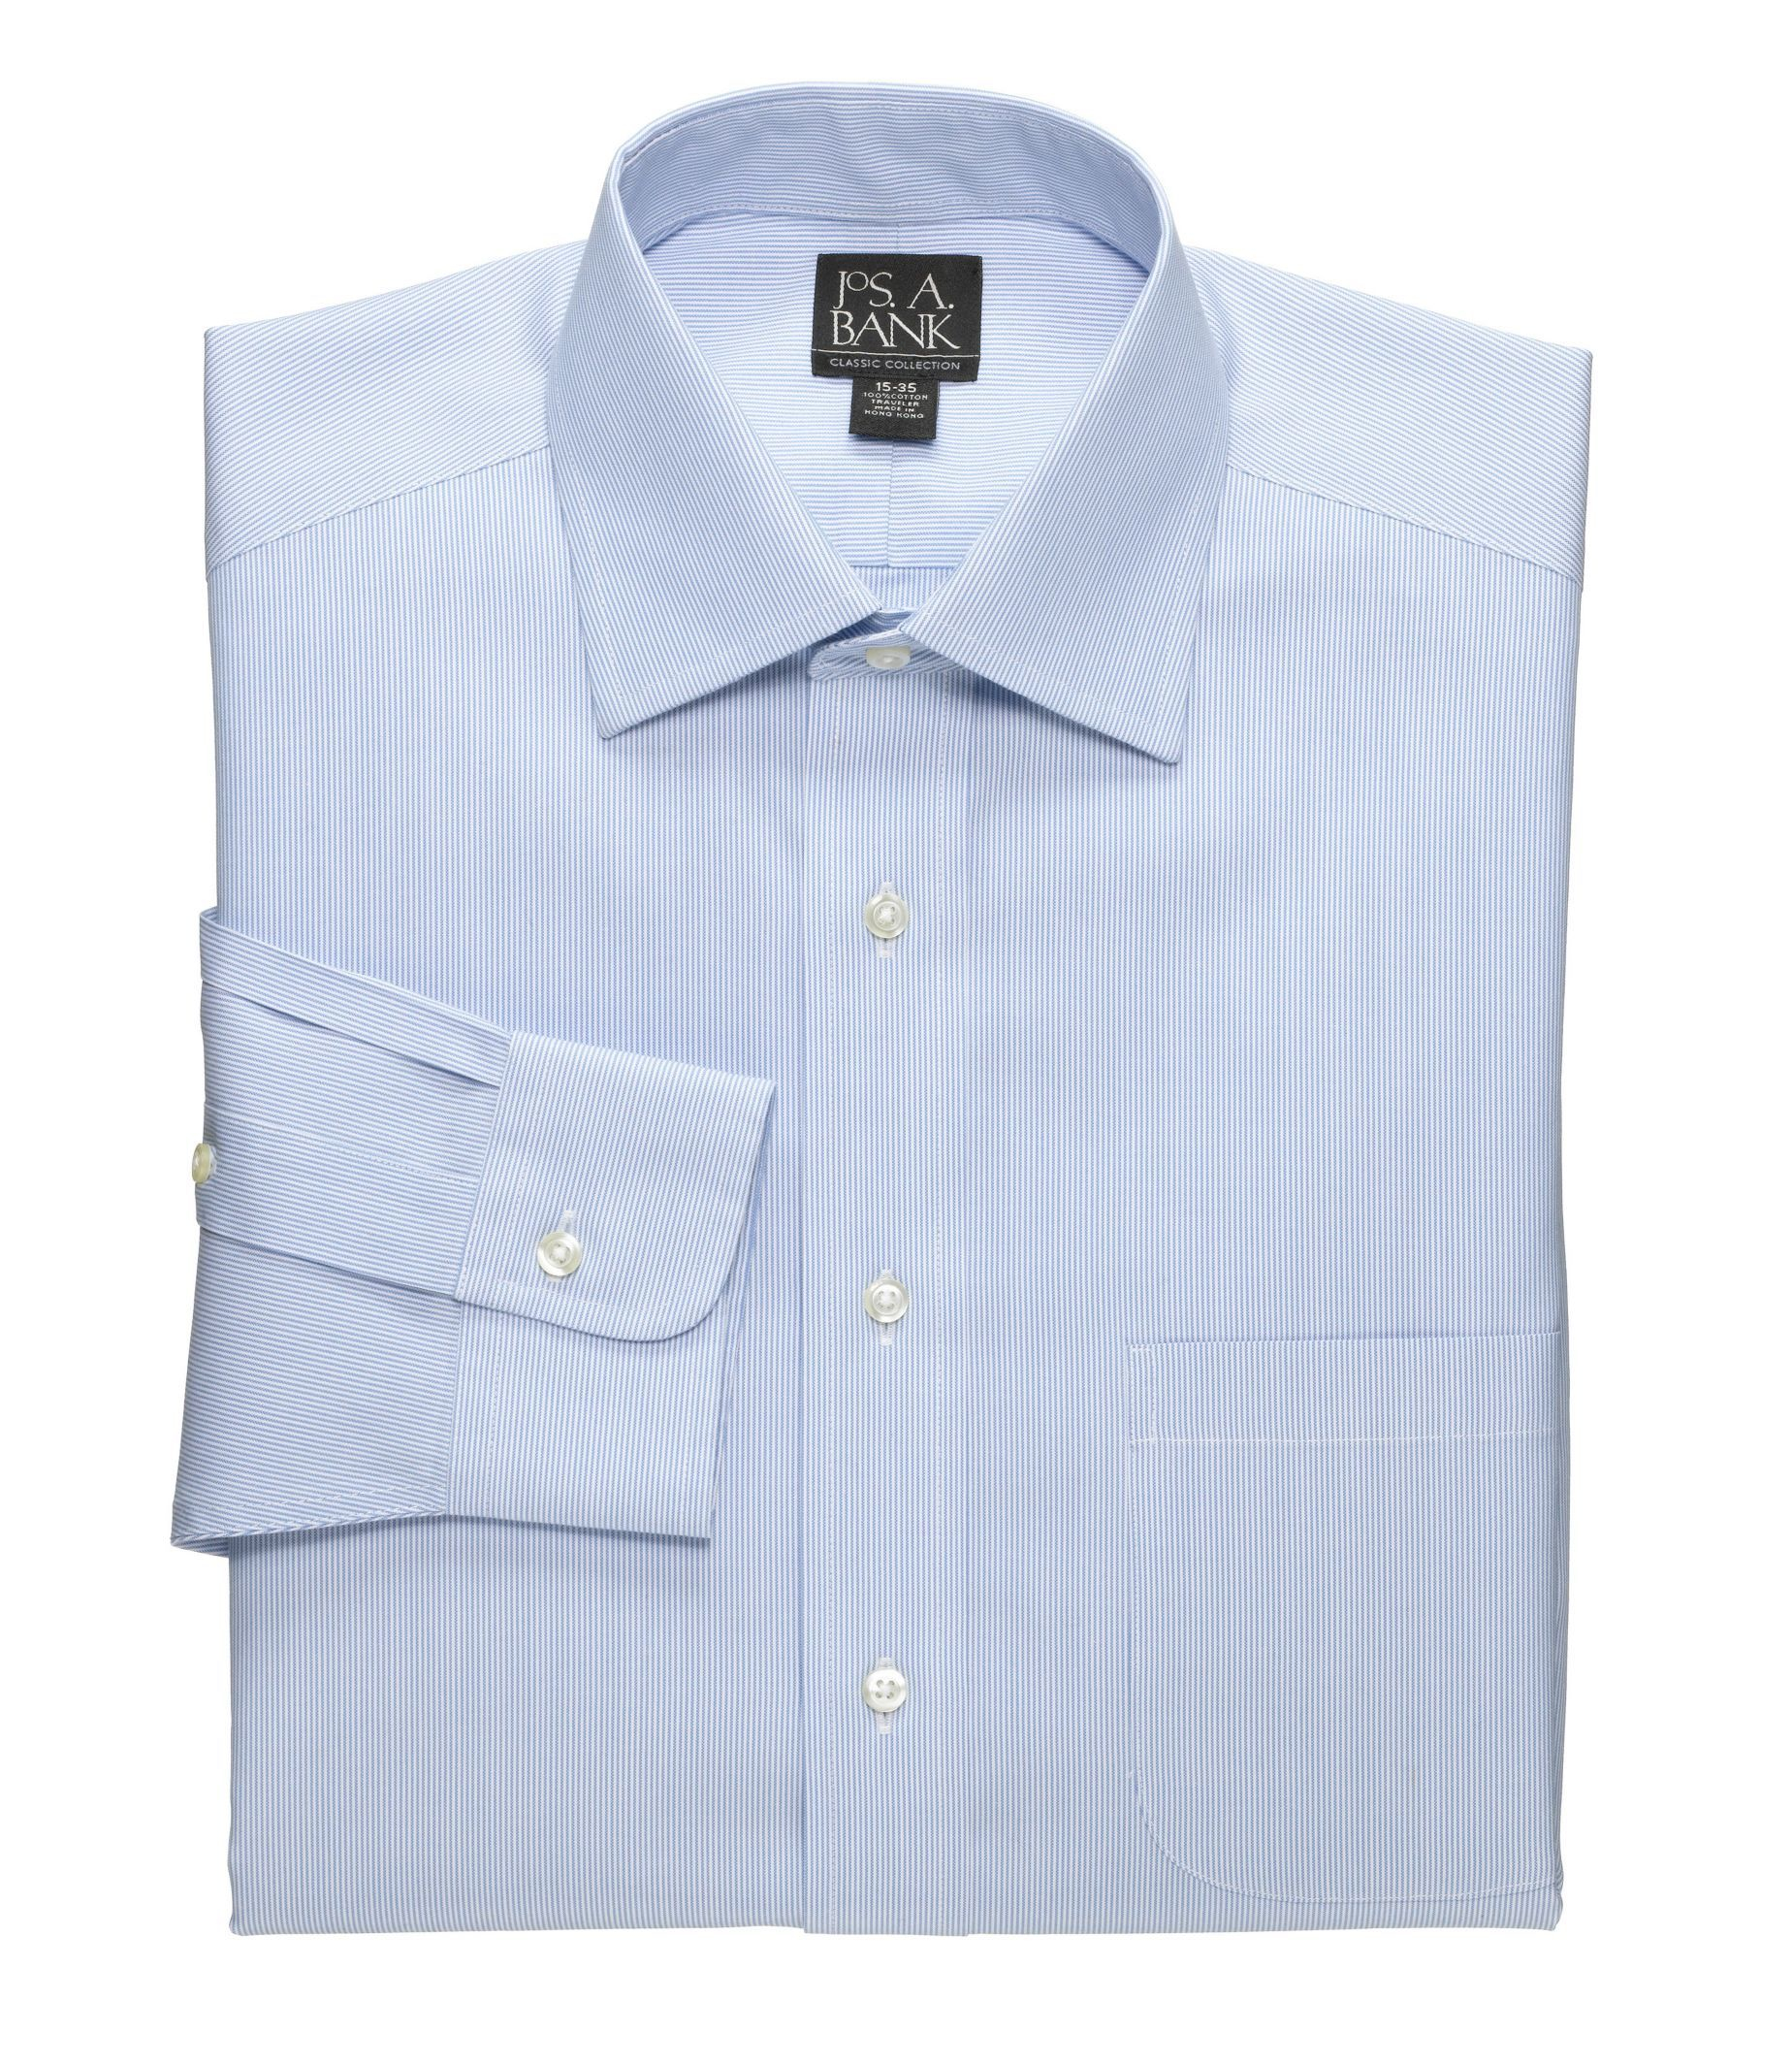 Lyst jos a bank classic collection non iron tailored for Spread collar dress shirt without tie